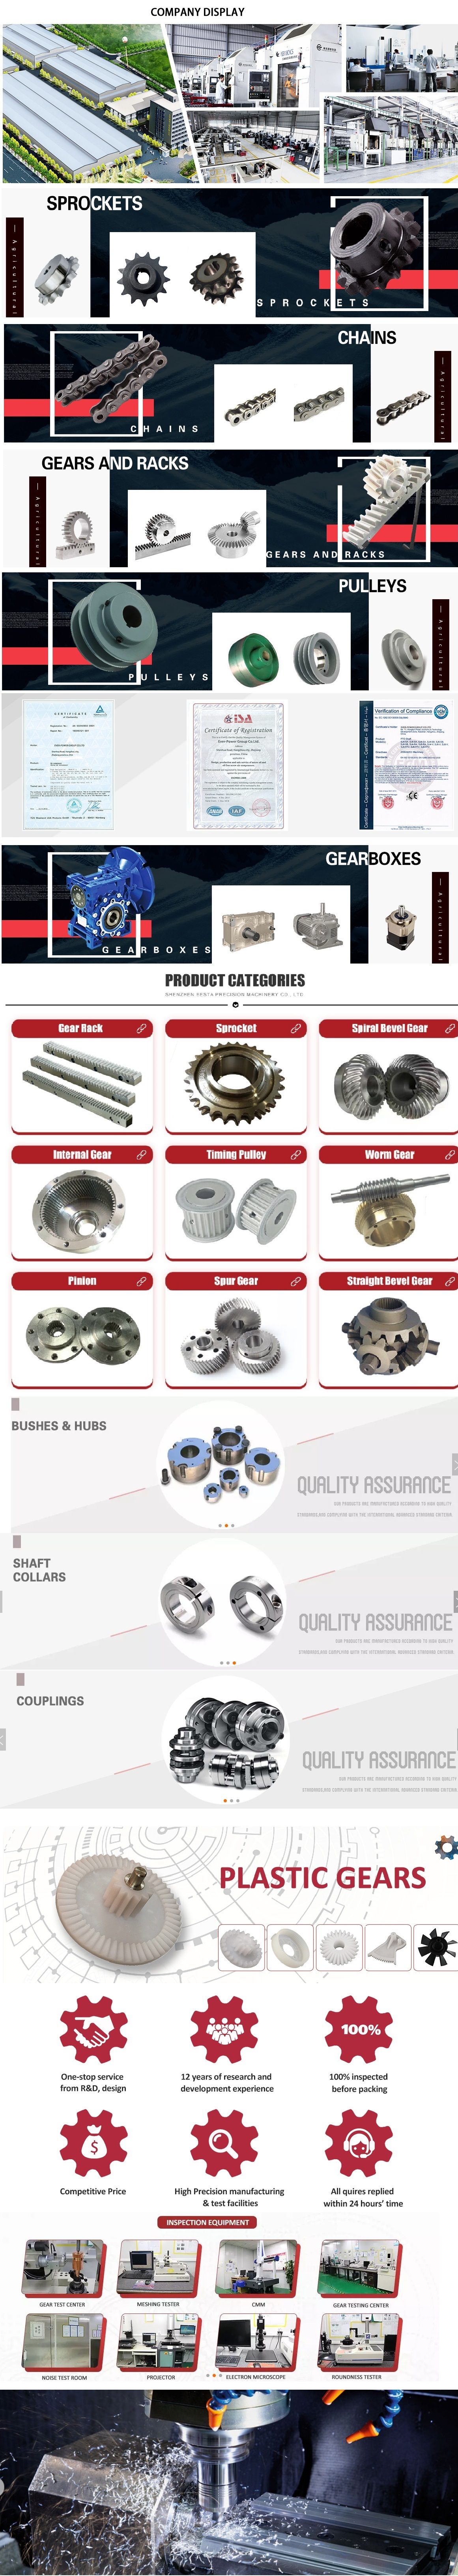 in Larkana Pakistan  sales   price   shop   near me   near me shop   factory   supplier Worm Gear Reducer Box Speed Reducer Jack Worm Agricultural Planetary Helical Bevel Steering Gear Drive Motor Speed Nmrv Good Quantity Durableworm Gear Reducers manufacturer   best   Cost   Custom   Cheap   wholesaler